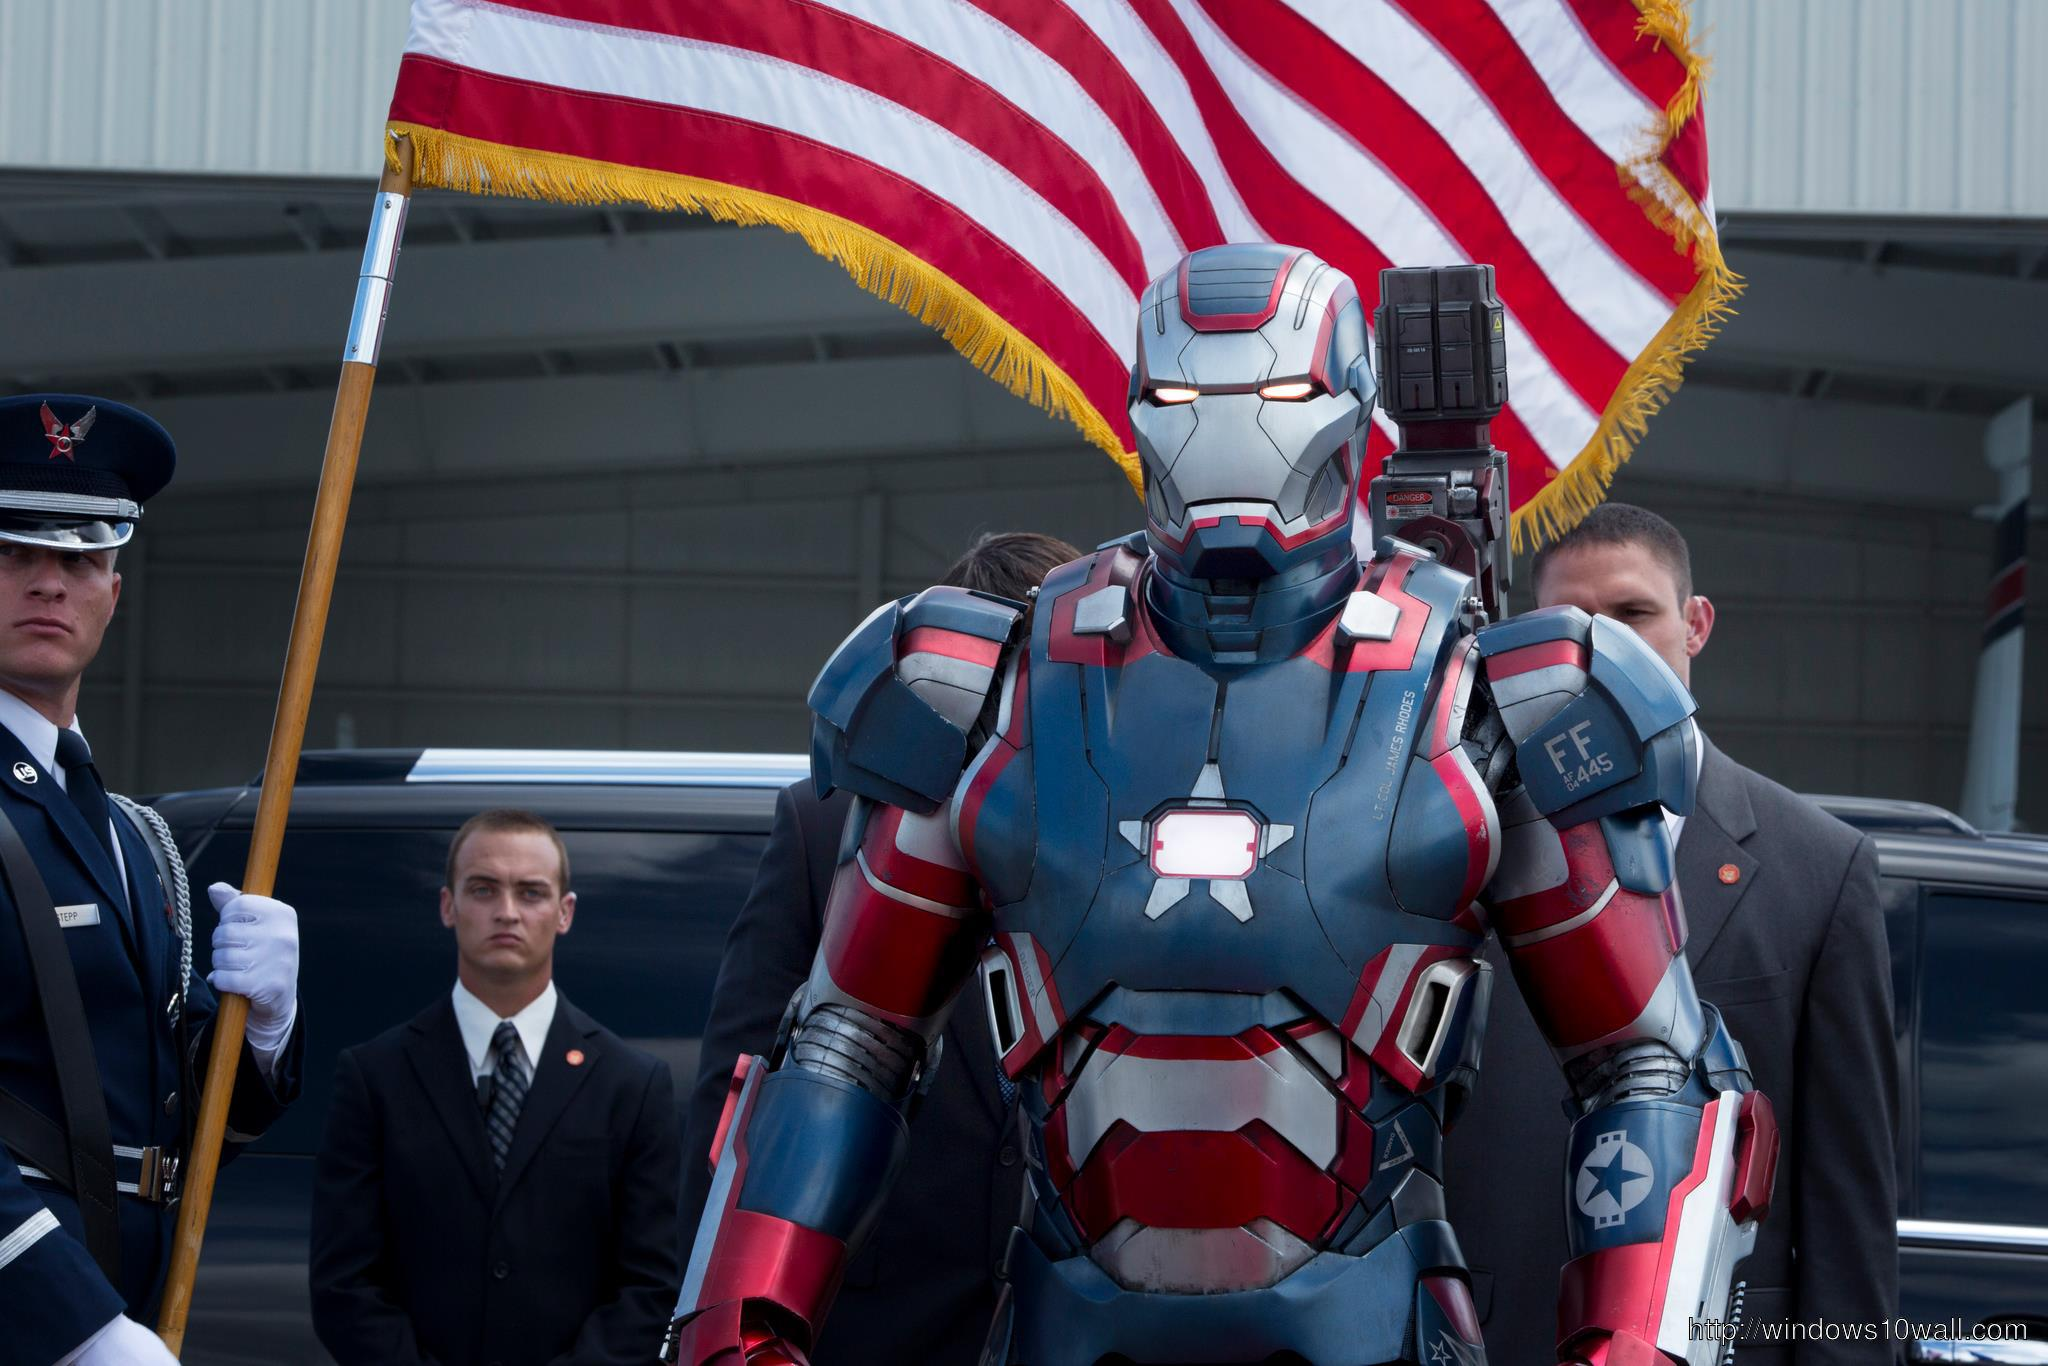 Iron Man 3 IMAX poster wallpaper free download for pc